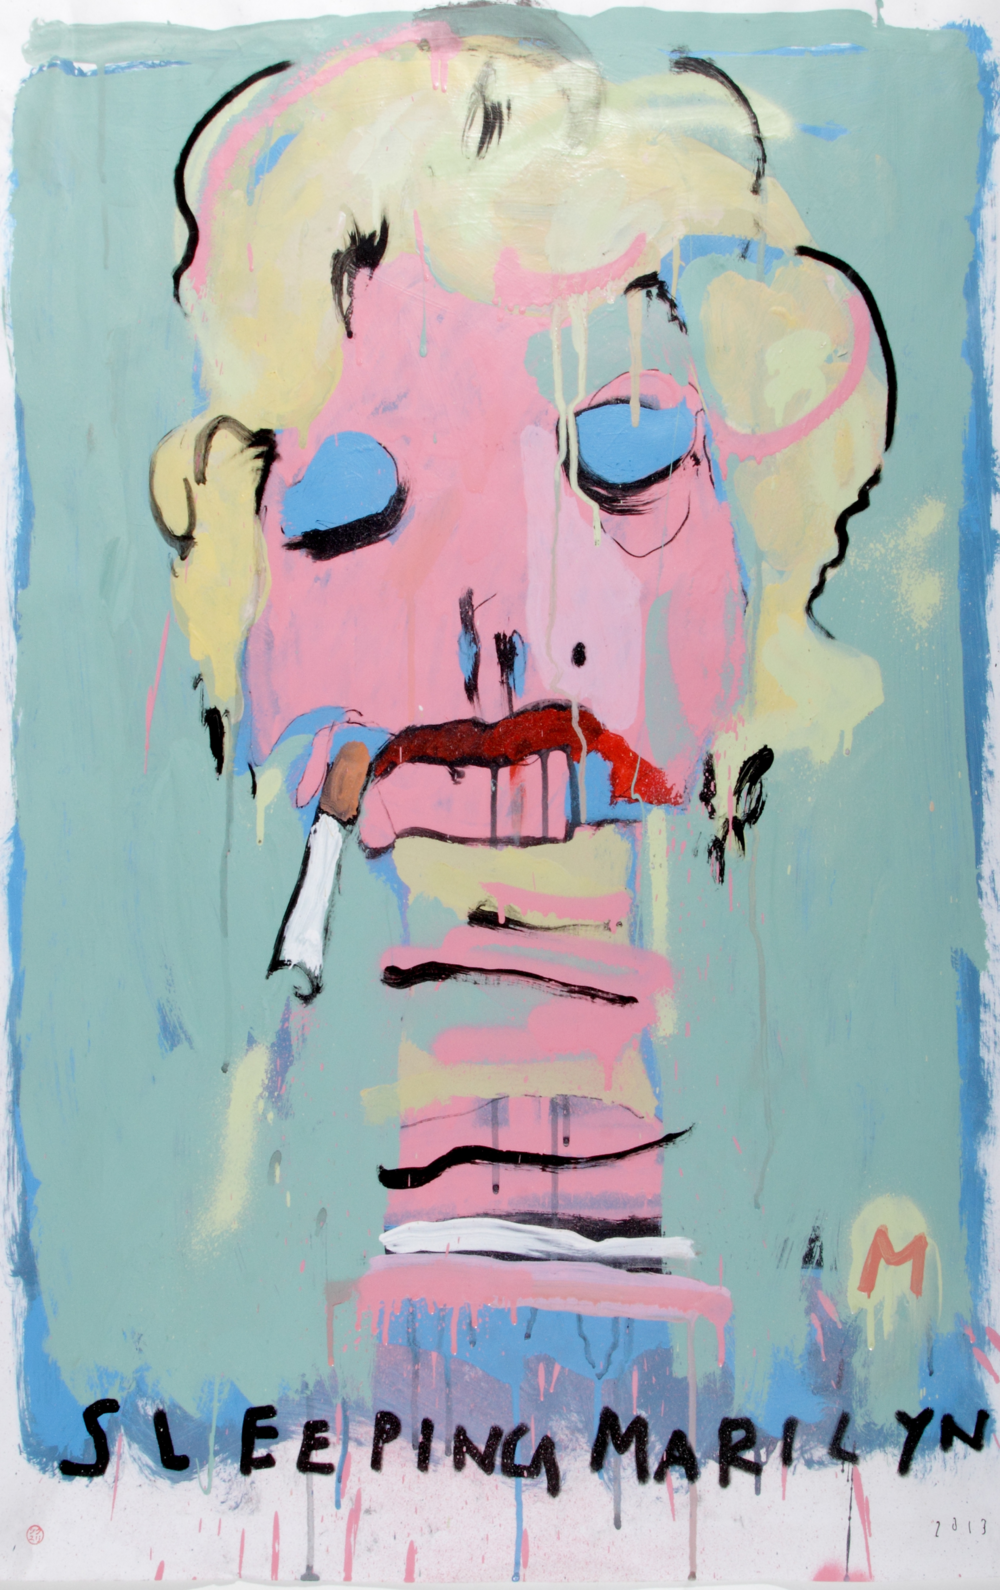 Sleeping Mariyln, 2014    [private collection LA  , CA]   Acrylic on paper   32 x 23 1/2 in.